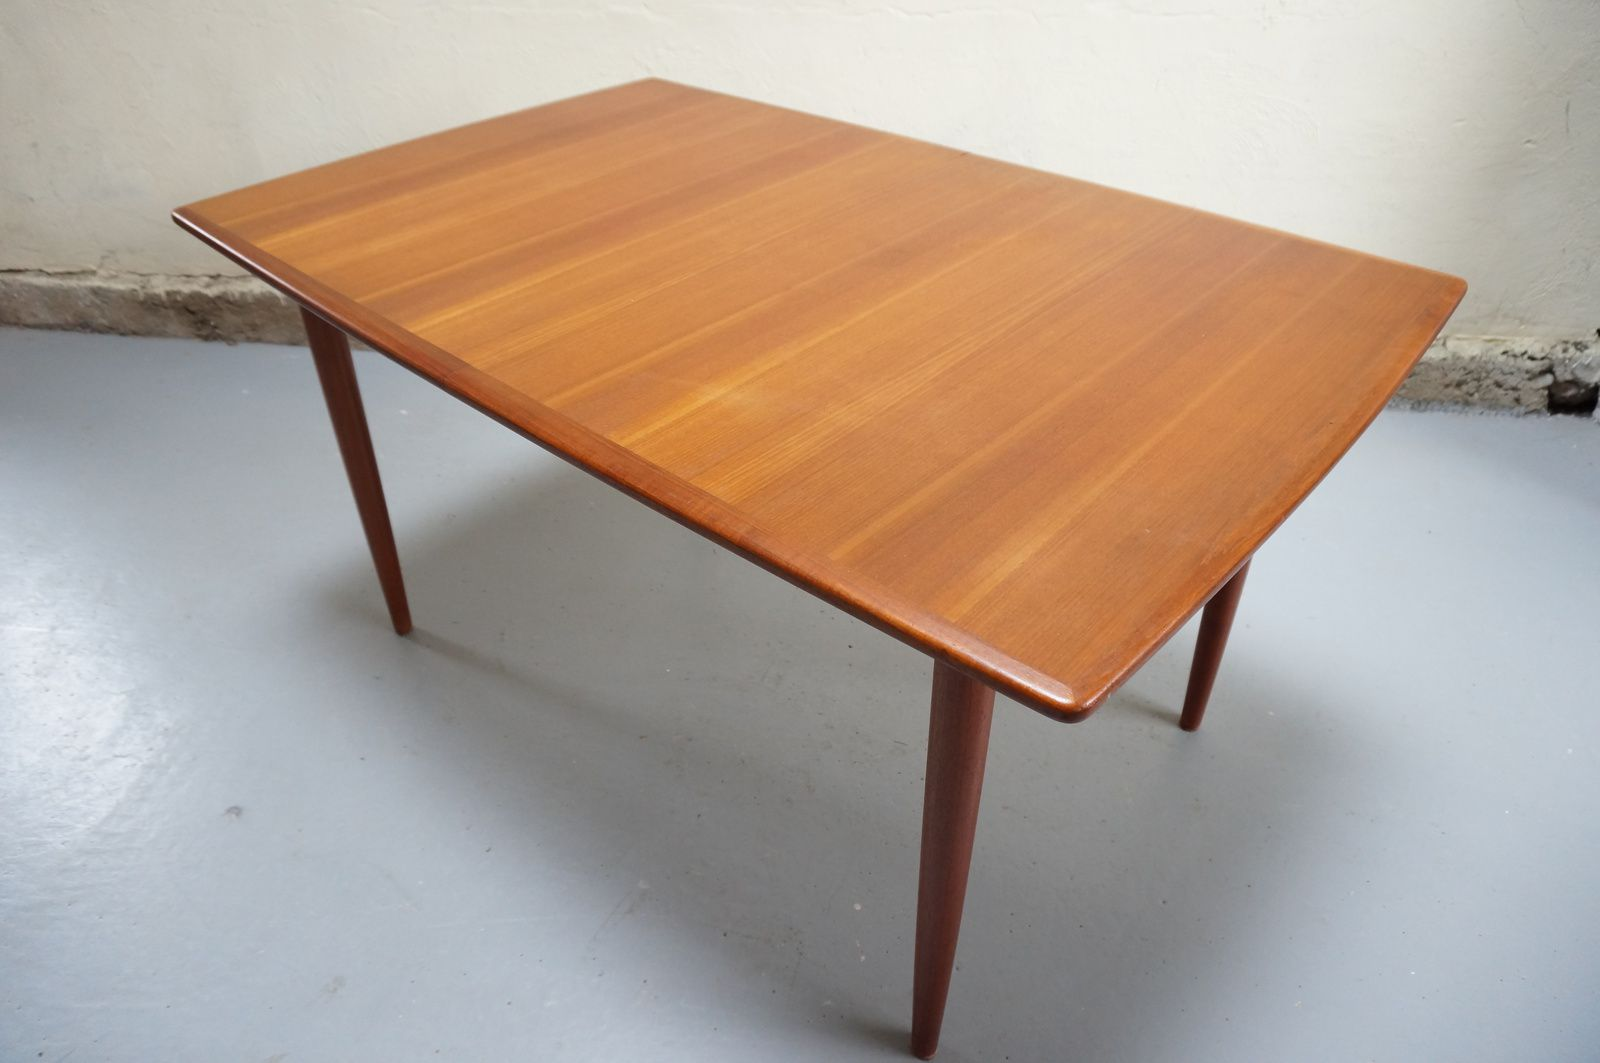 vendue table manger scandinave teck design danois